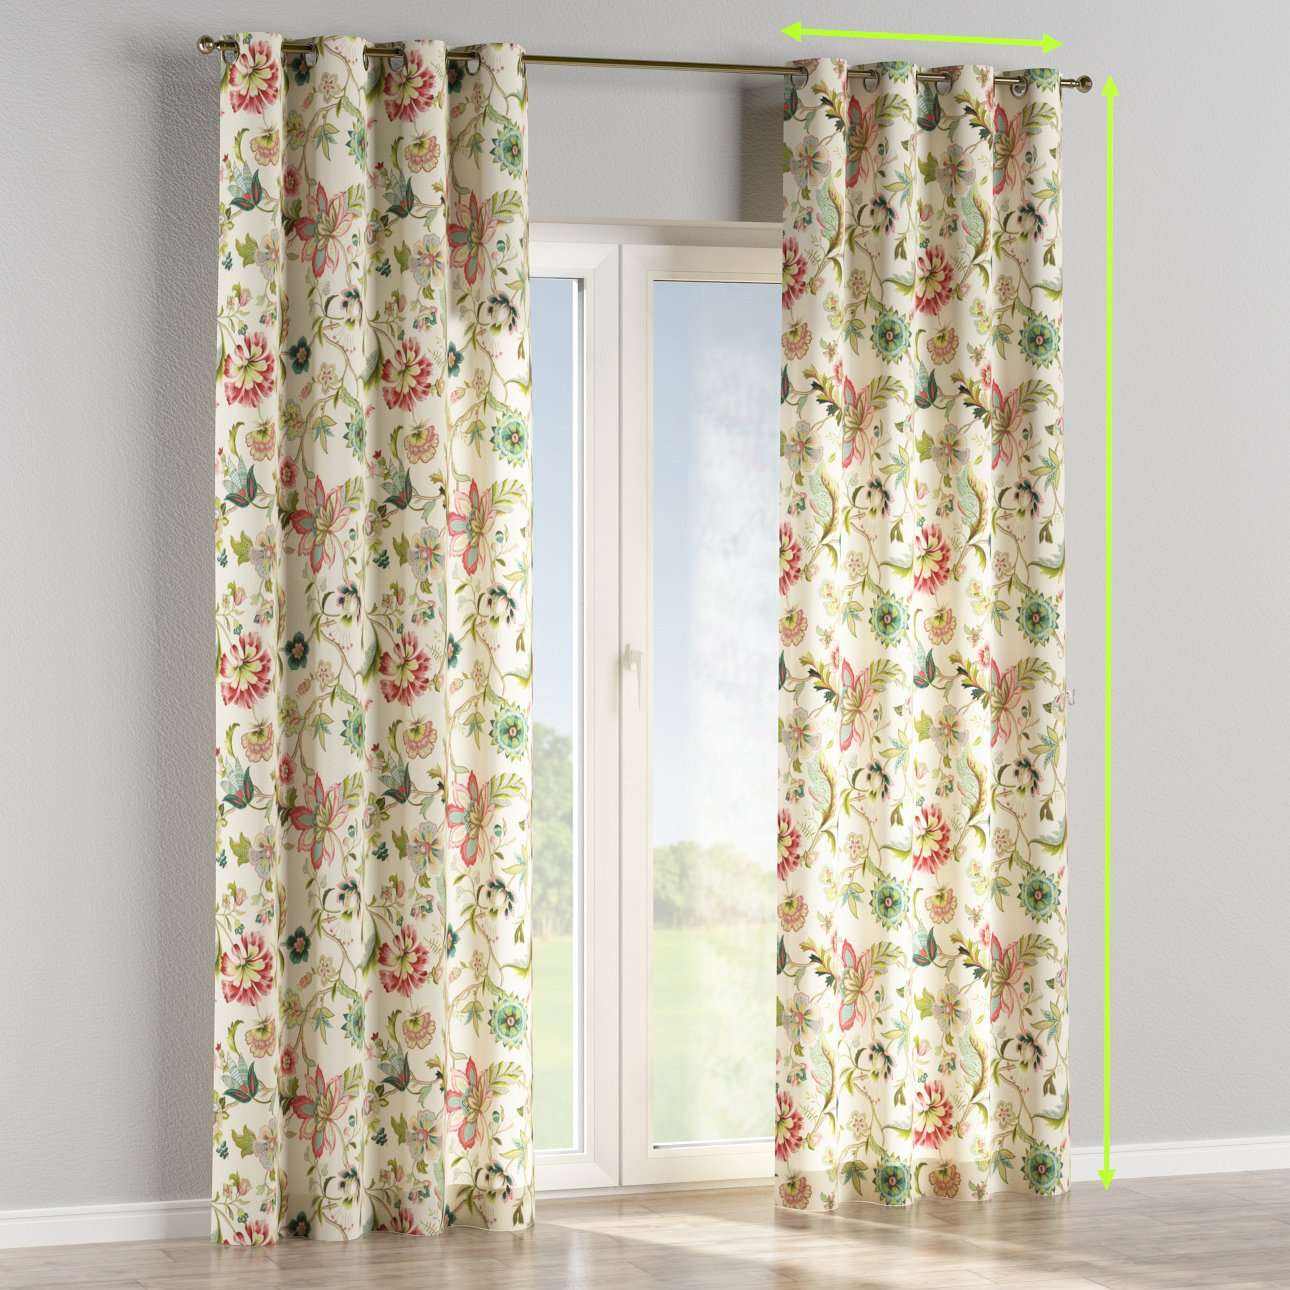 Eyelet curtains in collection Londres, fabric: 122-00